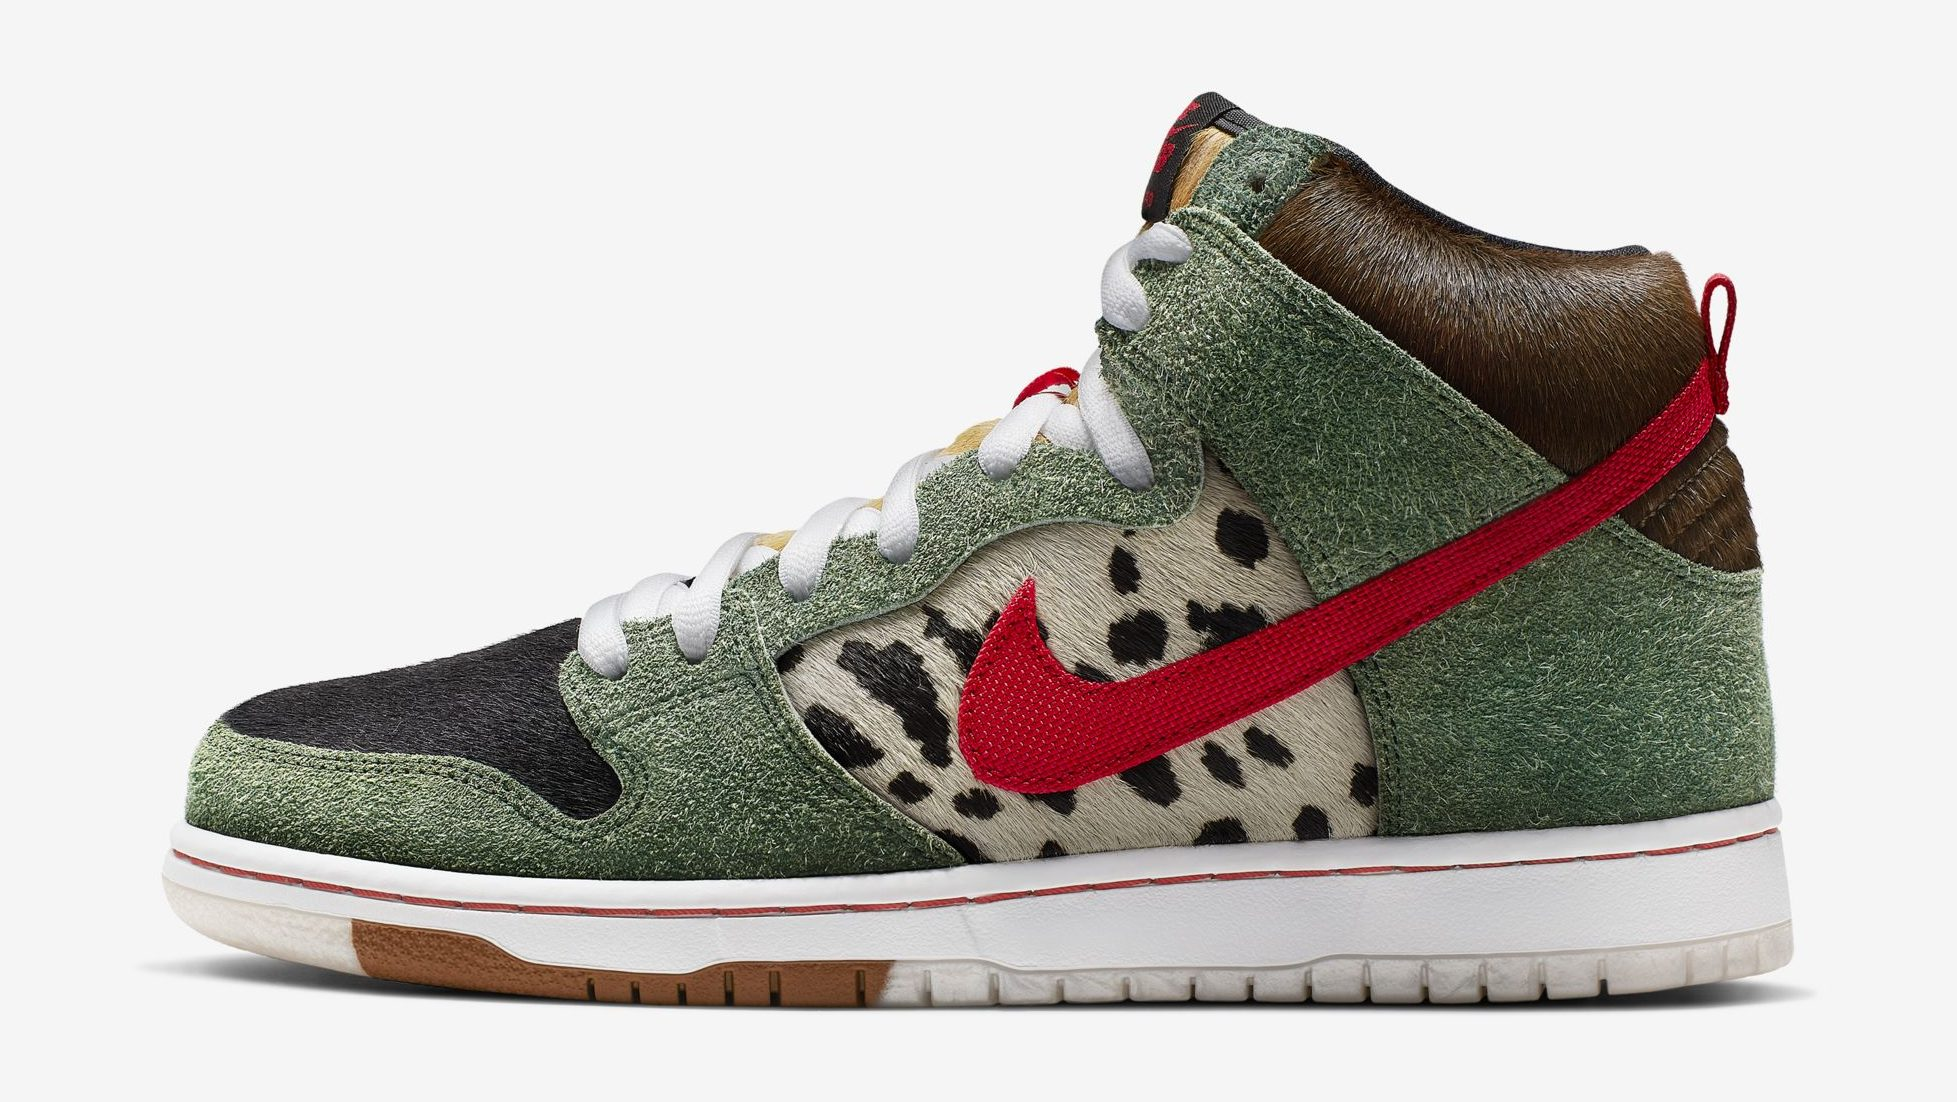 Nike SB 'Walk the Dog' Shoes Come With